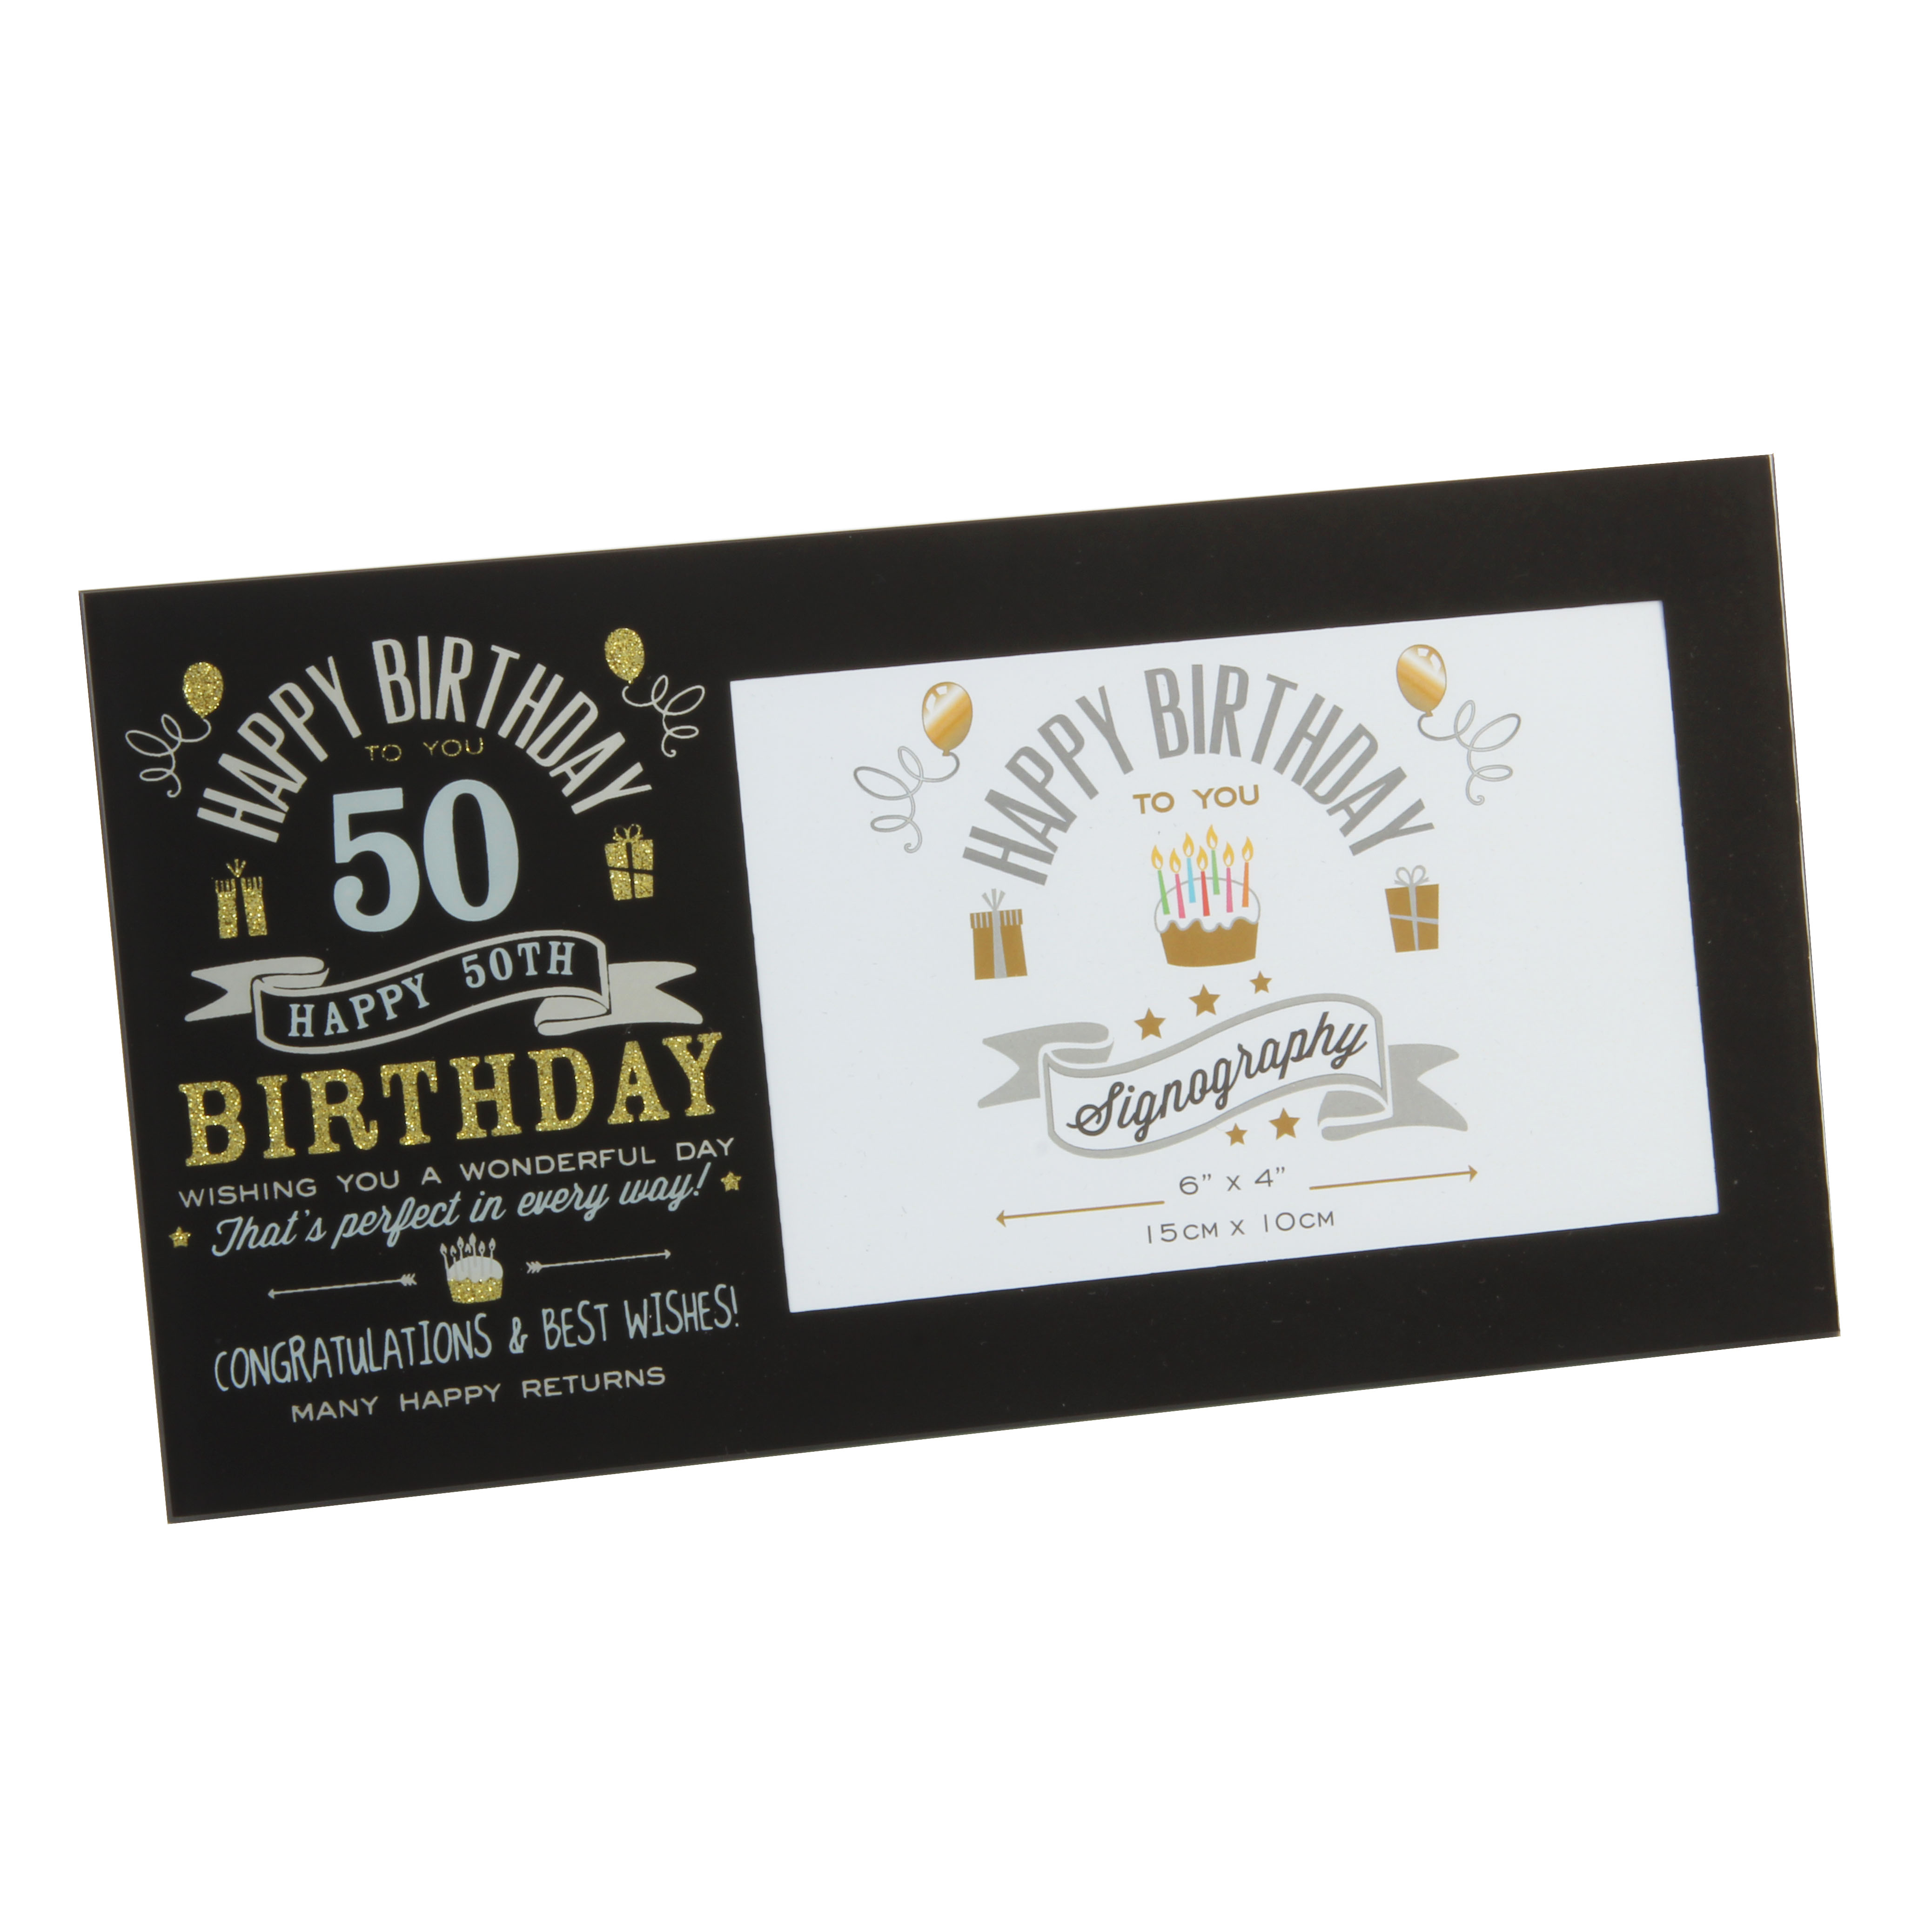 Birthday Frame 50th - One For Occasions